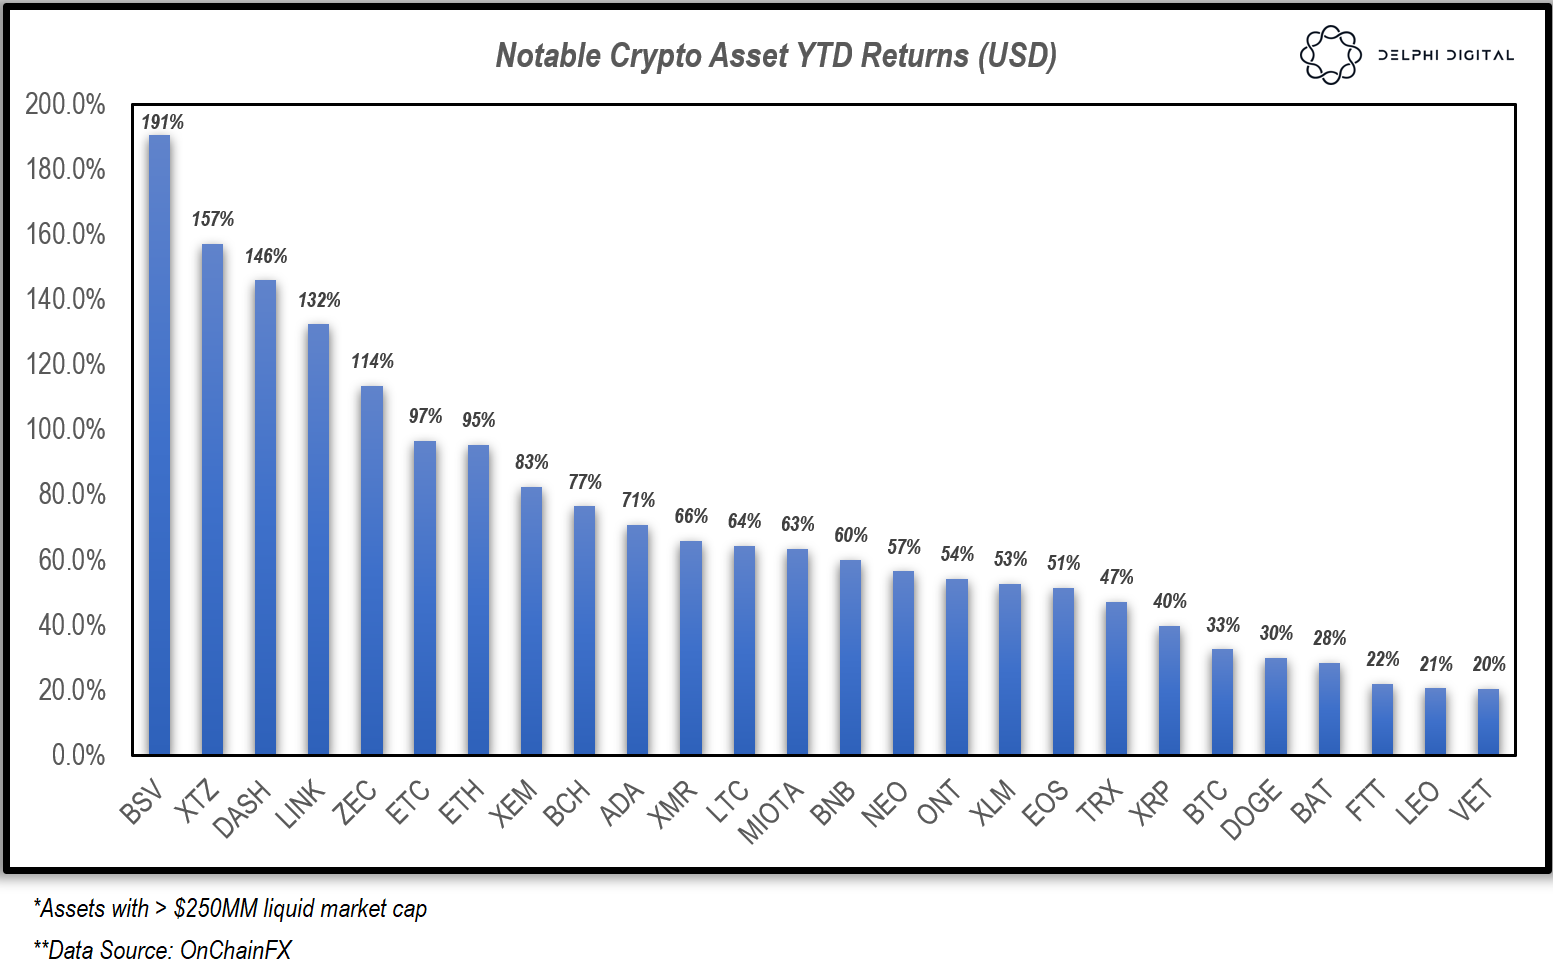 Notable Crypto Asset YTD Returns (USD). Source: Delphi Digital